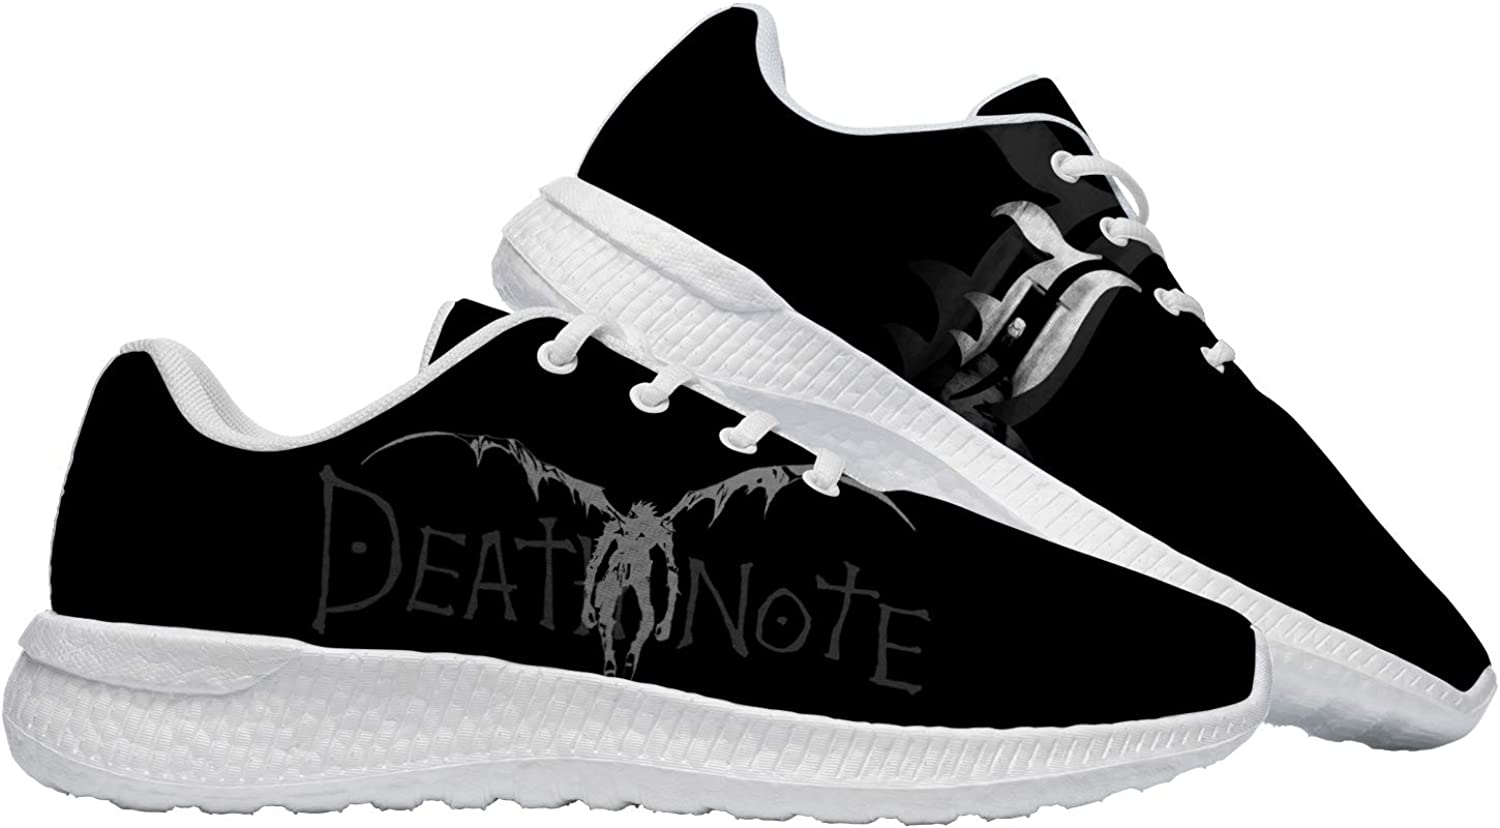 ADIGOW Max 68% OFF Japanese Anime Columbus Mall Shoes for Personalited Men Women Cos